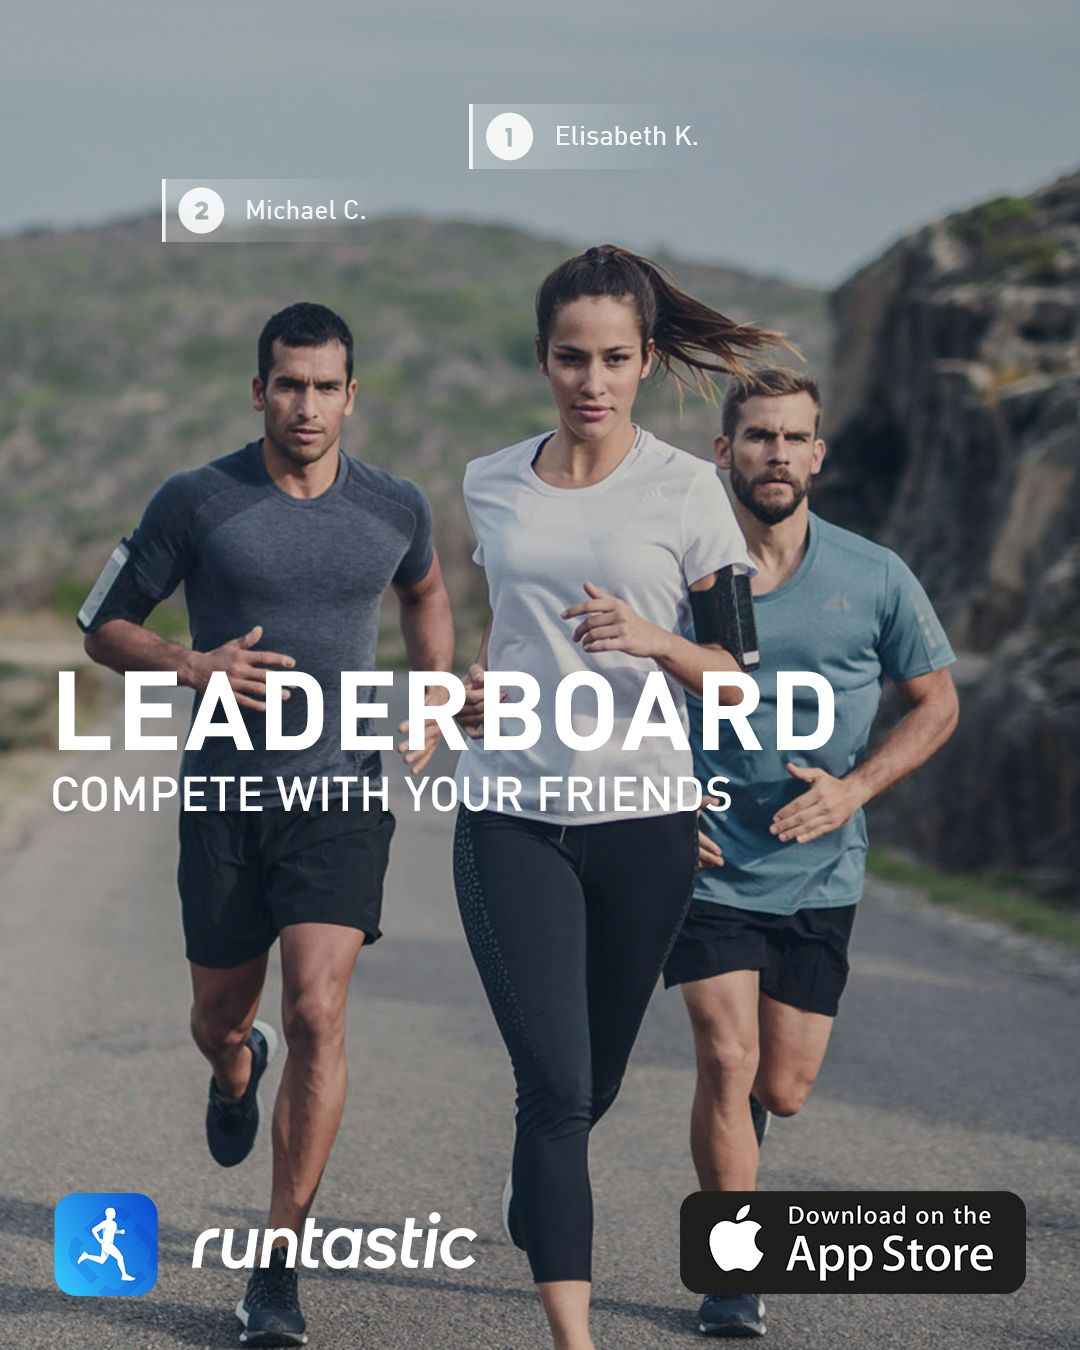 Running Jogging App Track Your Running Fitness Activities With Runtastic